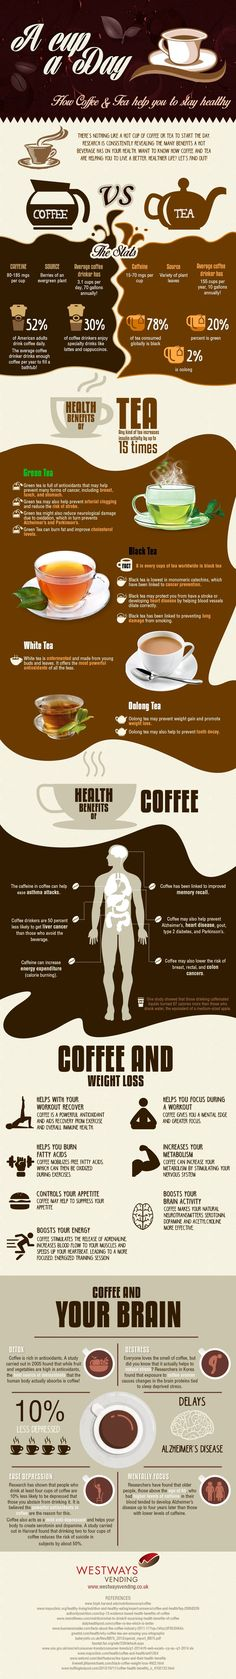 Health Benefits of Coffee Tea Infographic! - James Washington - - Health Benefits of Coffee Tea Infographic! I Love Coffee, Coffee Break, My Coffee, Coffee Drinks, Coffee Shop, Nitro Coffee, Coffee Bags, Drinking Coffee, Diet Coffee